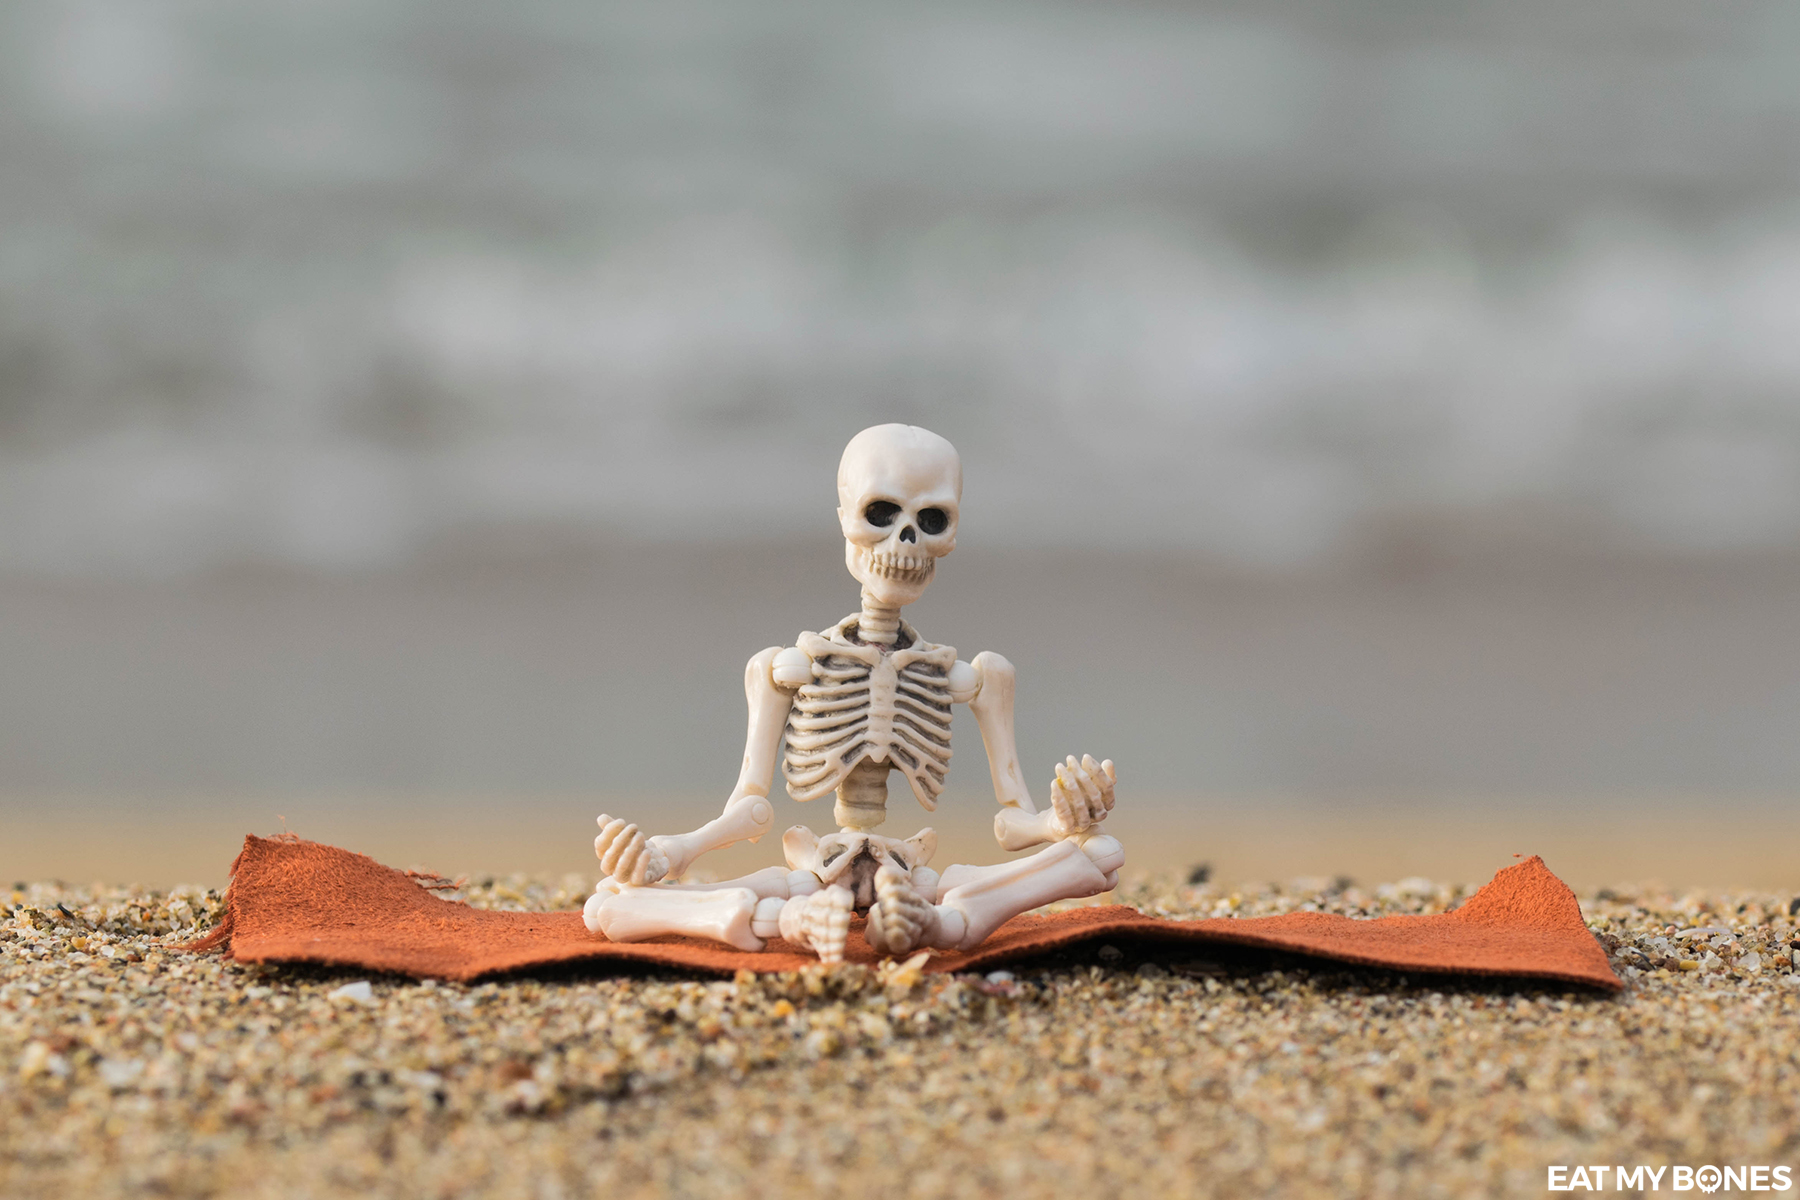 Morning Yoga on the beach - Pose Skeleton - Toy photography - Miniature - Eat my Bones